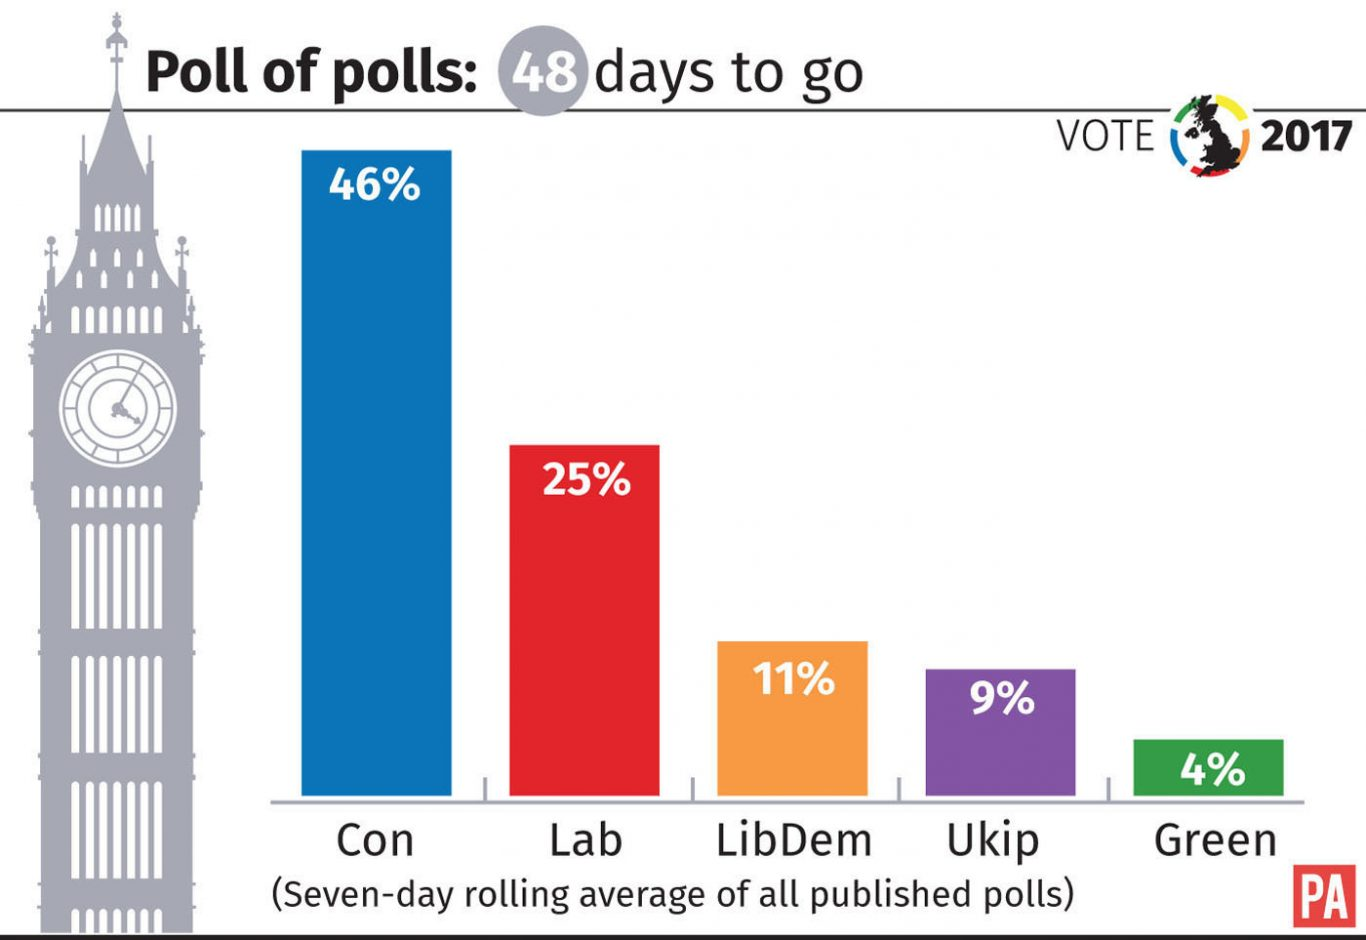 With 48 days to go, how the parties stand in the poll of polls